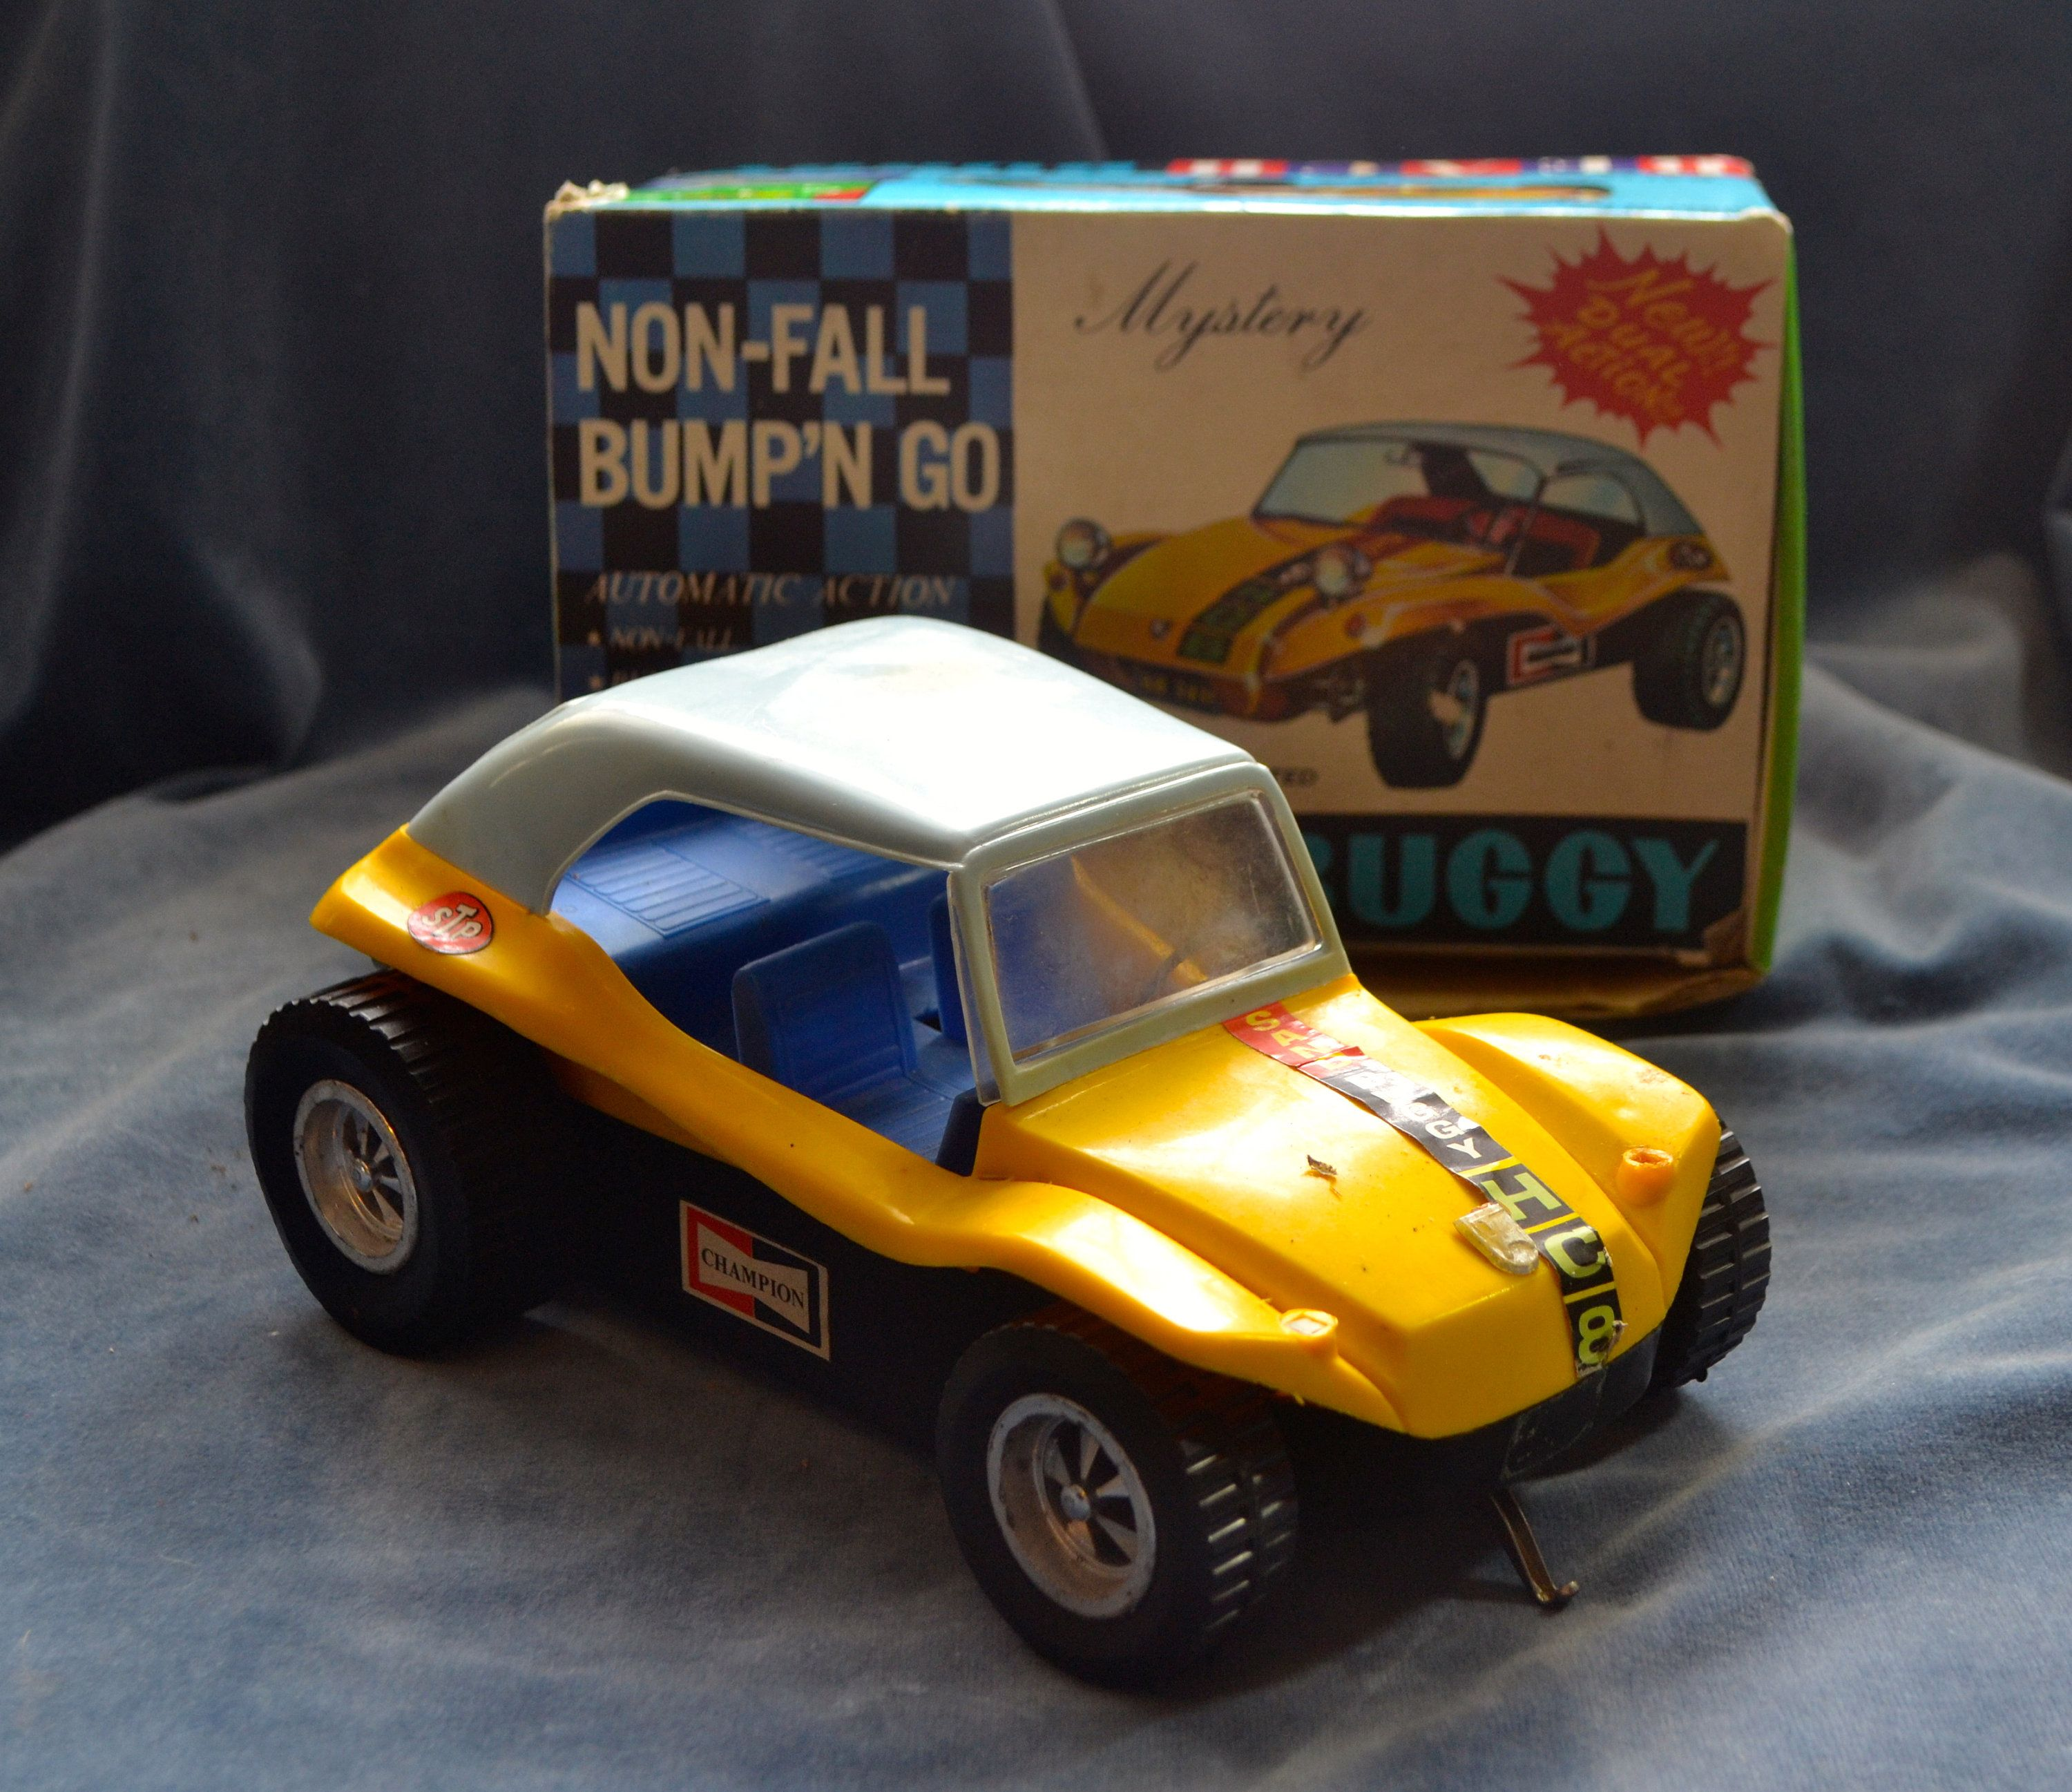 1960 S Taiyo Battery Operated Bump N Go Mystery Beach Buggy Toy Car Boxed By Triggerstreasure On Etsy Toy Car Beach Buggy Box Car